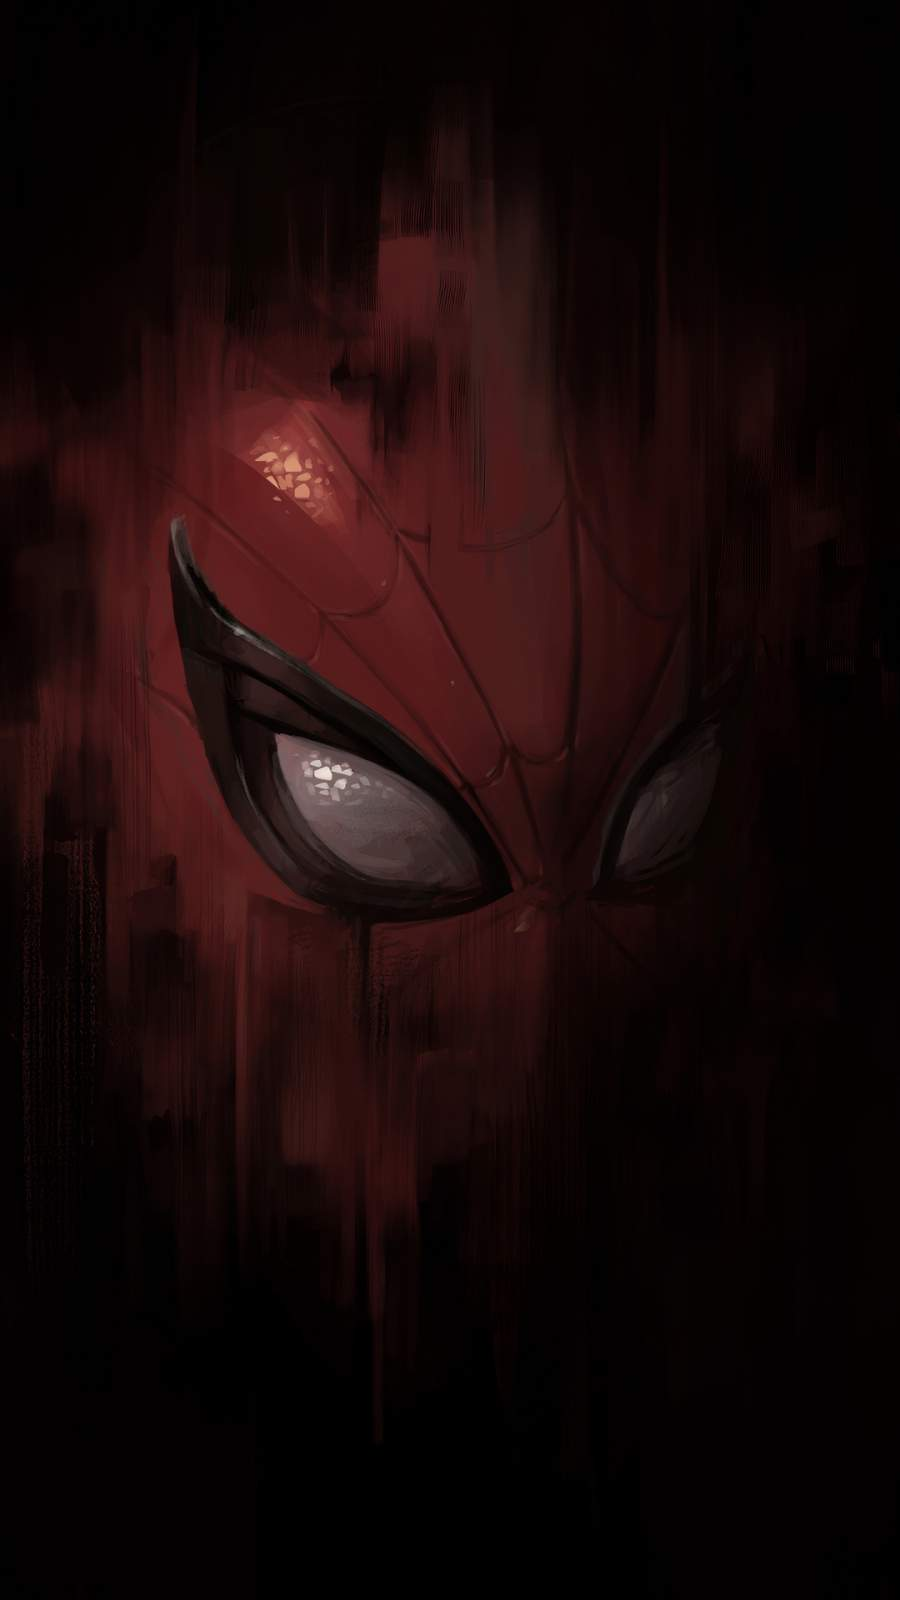 Spiderman Mask iPhone Wallpaper